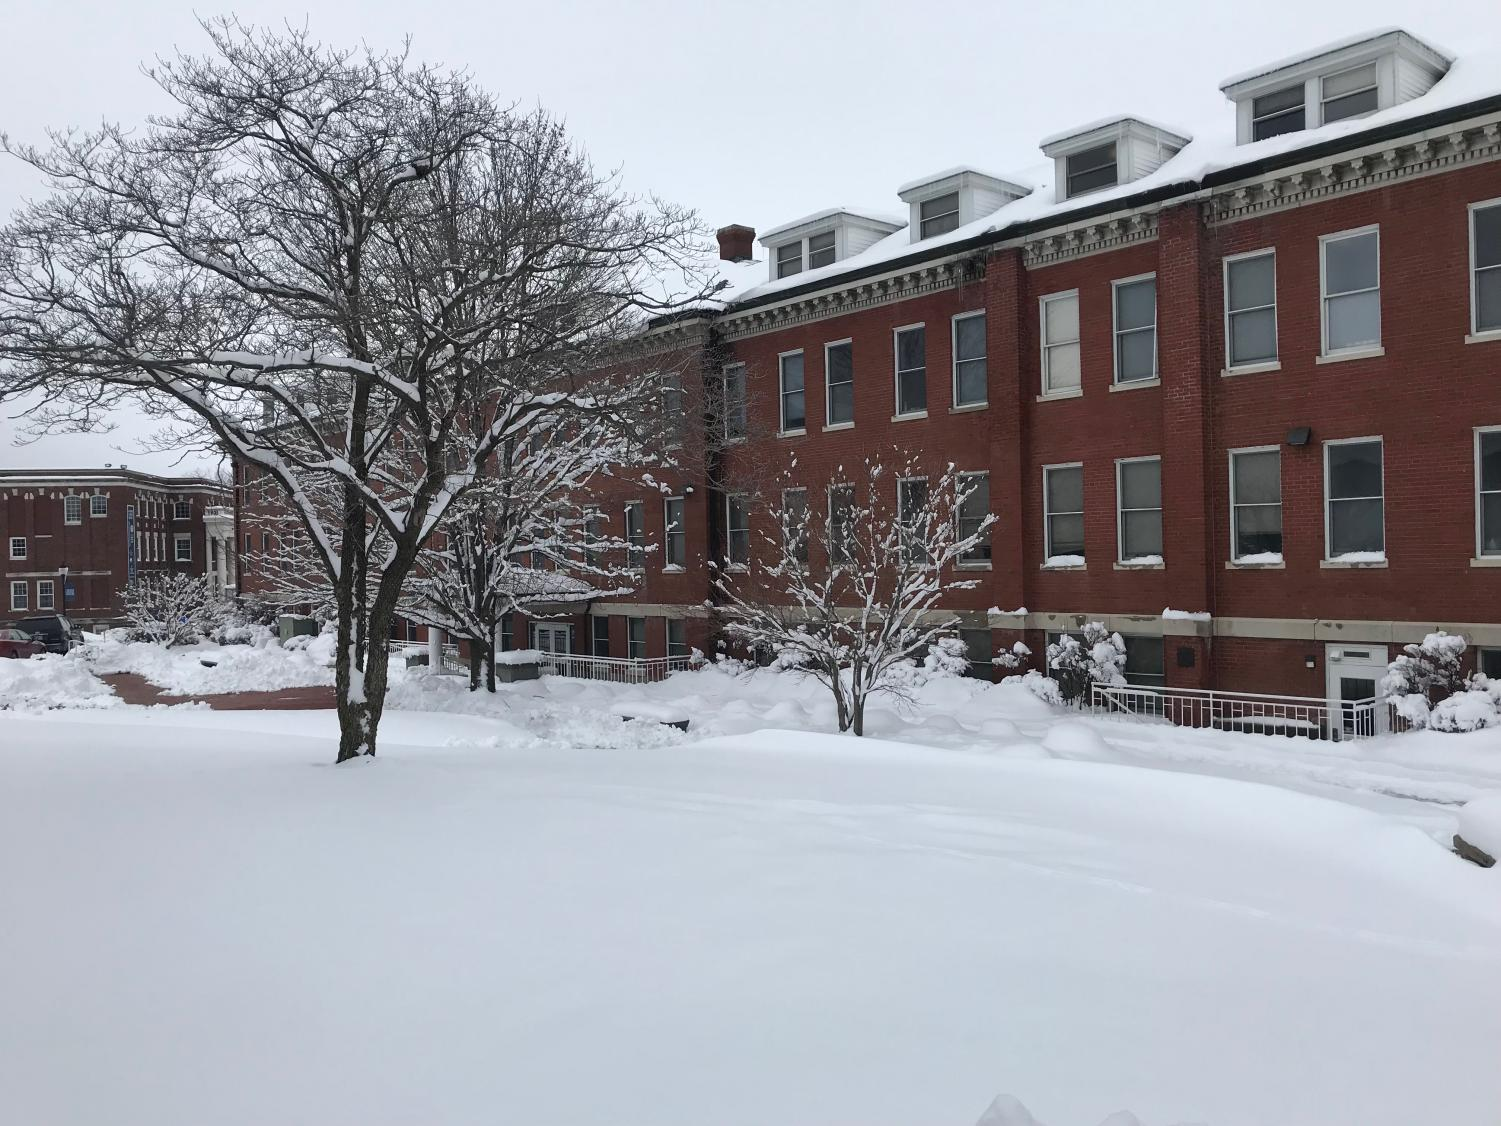 A snow day on Culver-Stockton College campus.